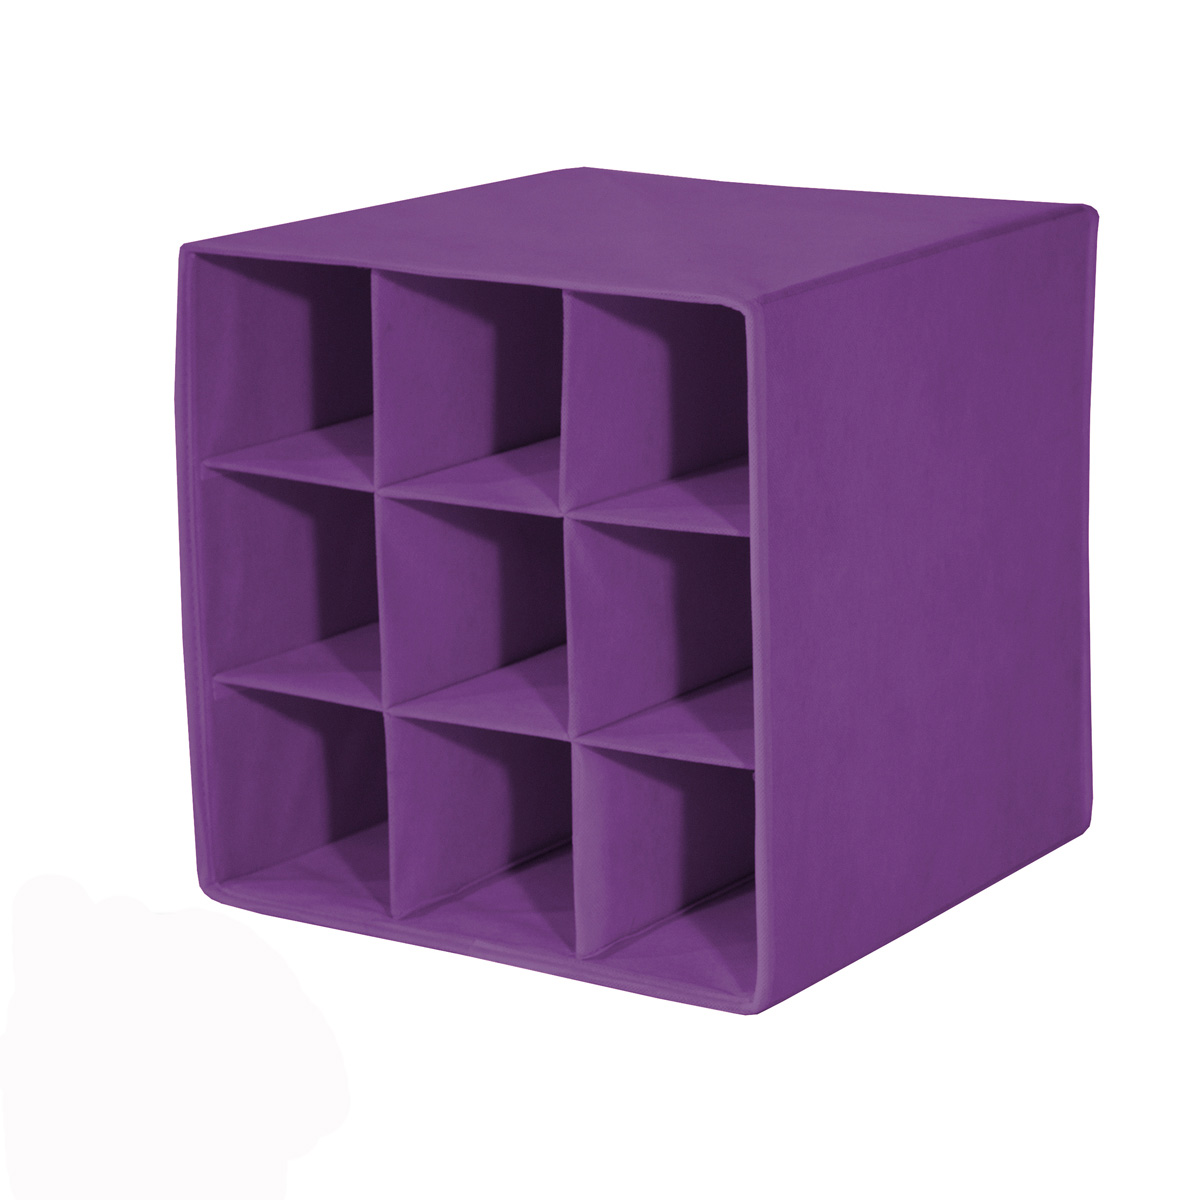 faltbox alfa 4 korb regal flaschenablage box farbe brombeere ebay. Black Bedroom Furniture Sets. Home Design Ideas